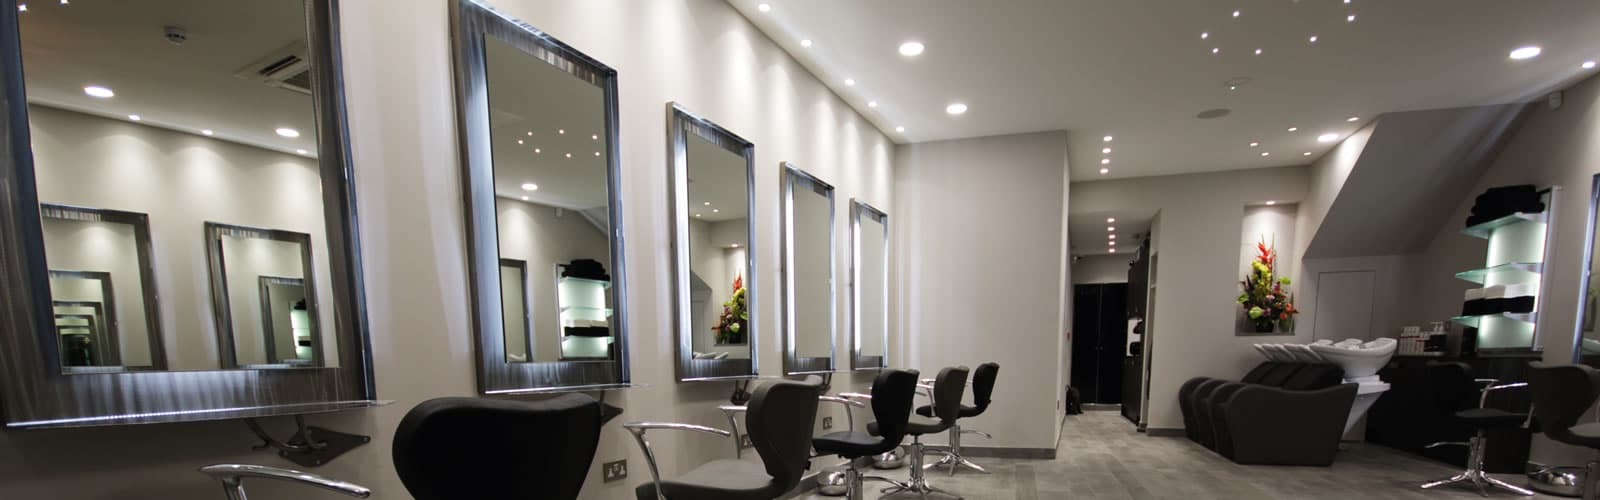 How to contact enfield hair salon